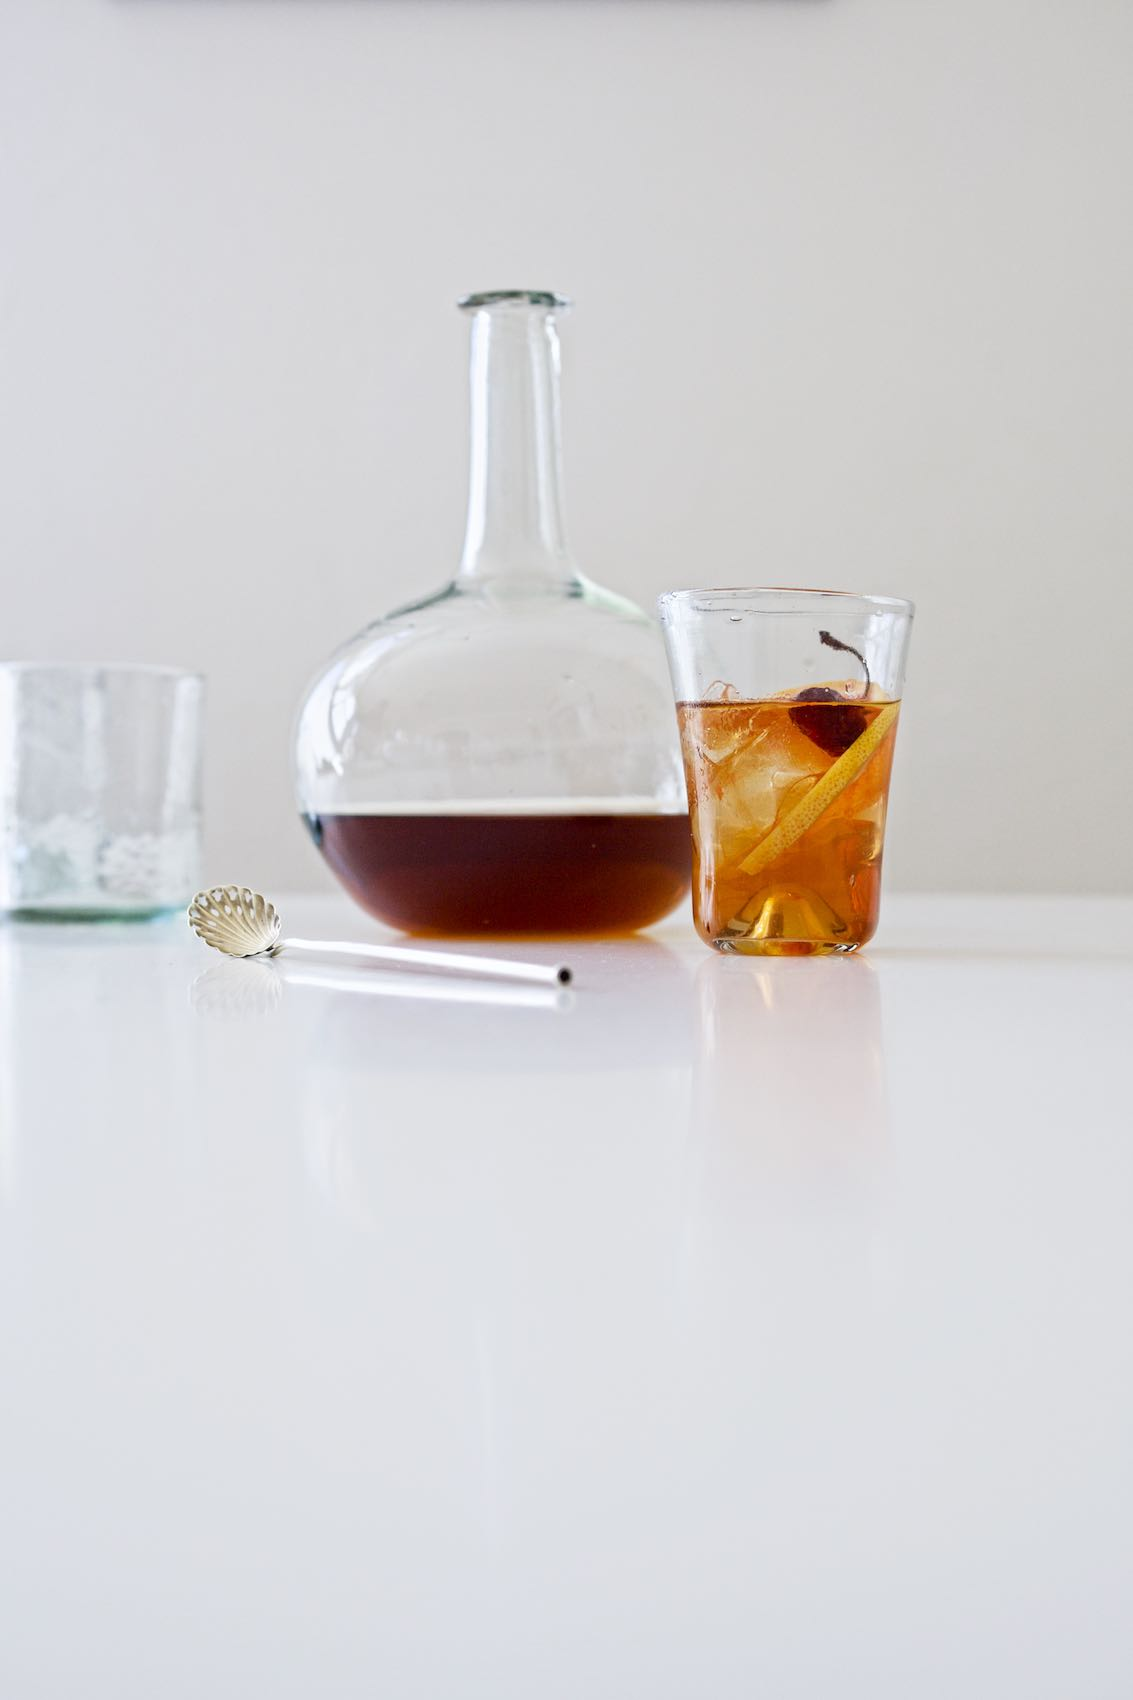 Jody Horton Photography - Bottle and classic bourbon cocktail on white table for Food & Wine.